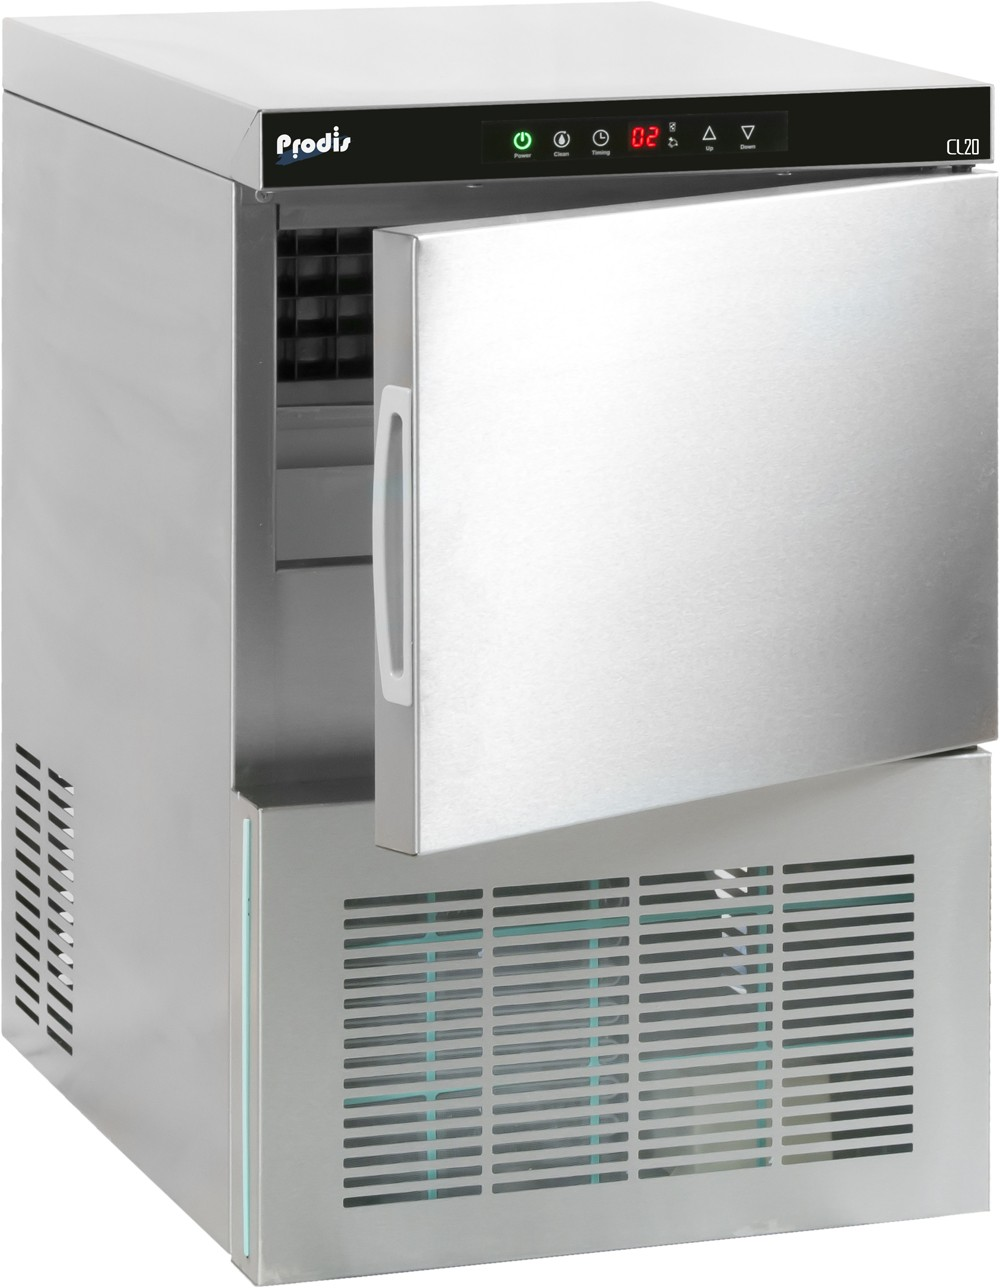 --- PRODIS CL20 --- Compact Under Counter Icemaker with 6kg Storage